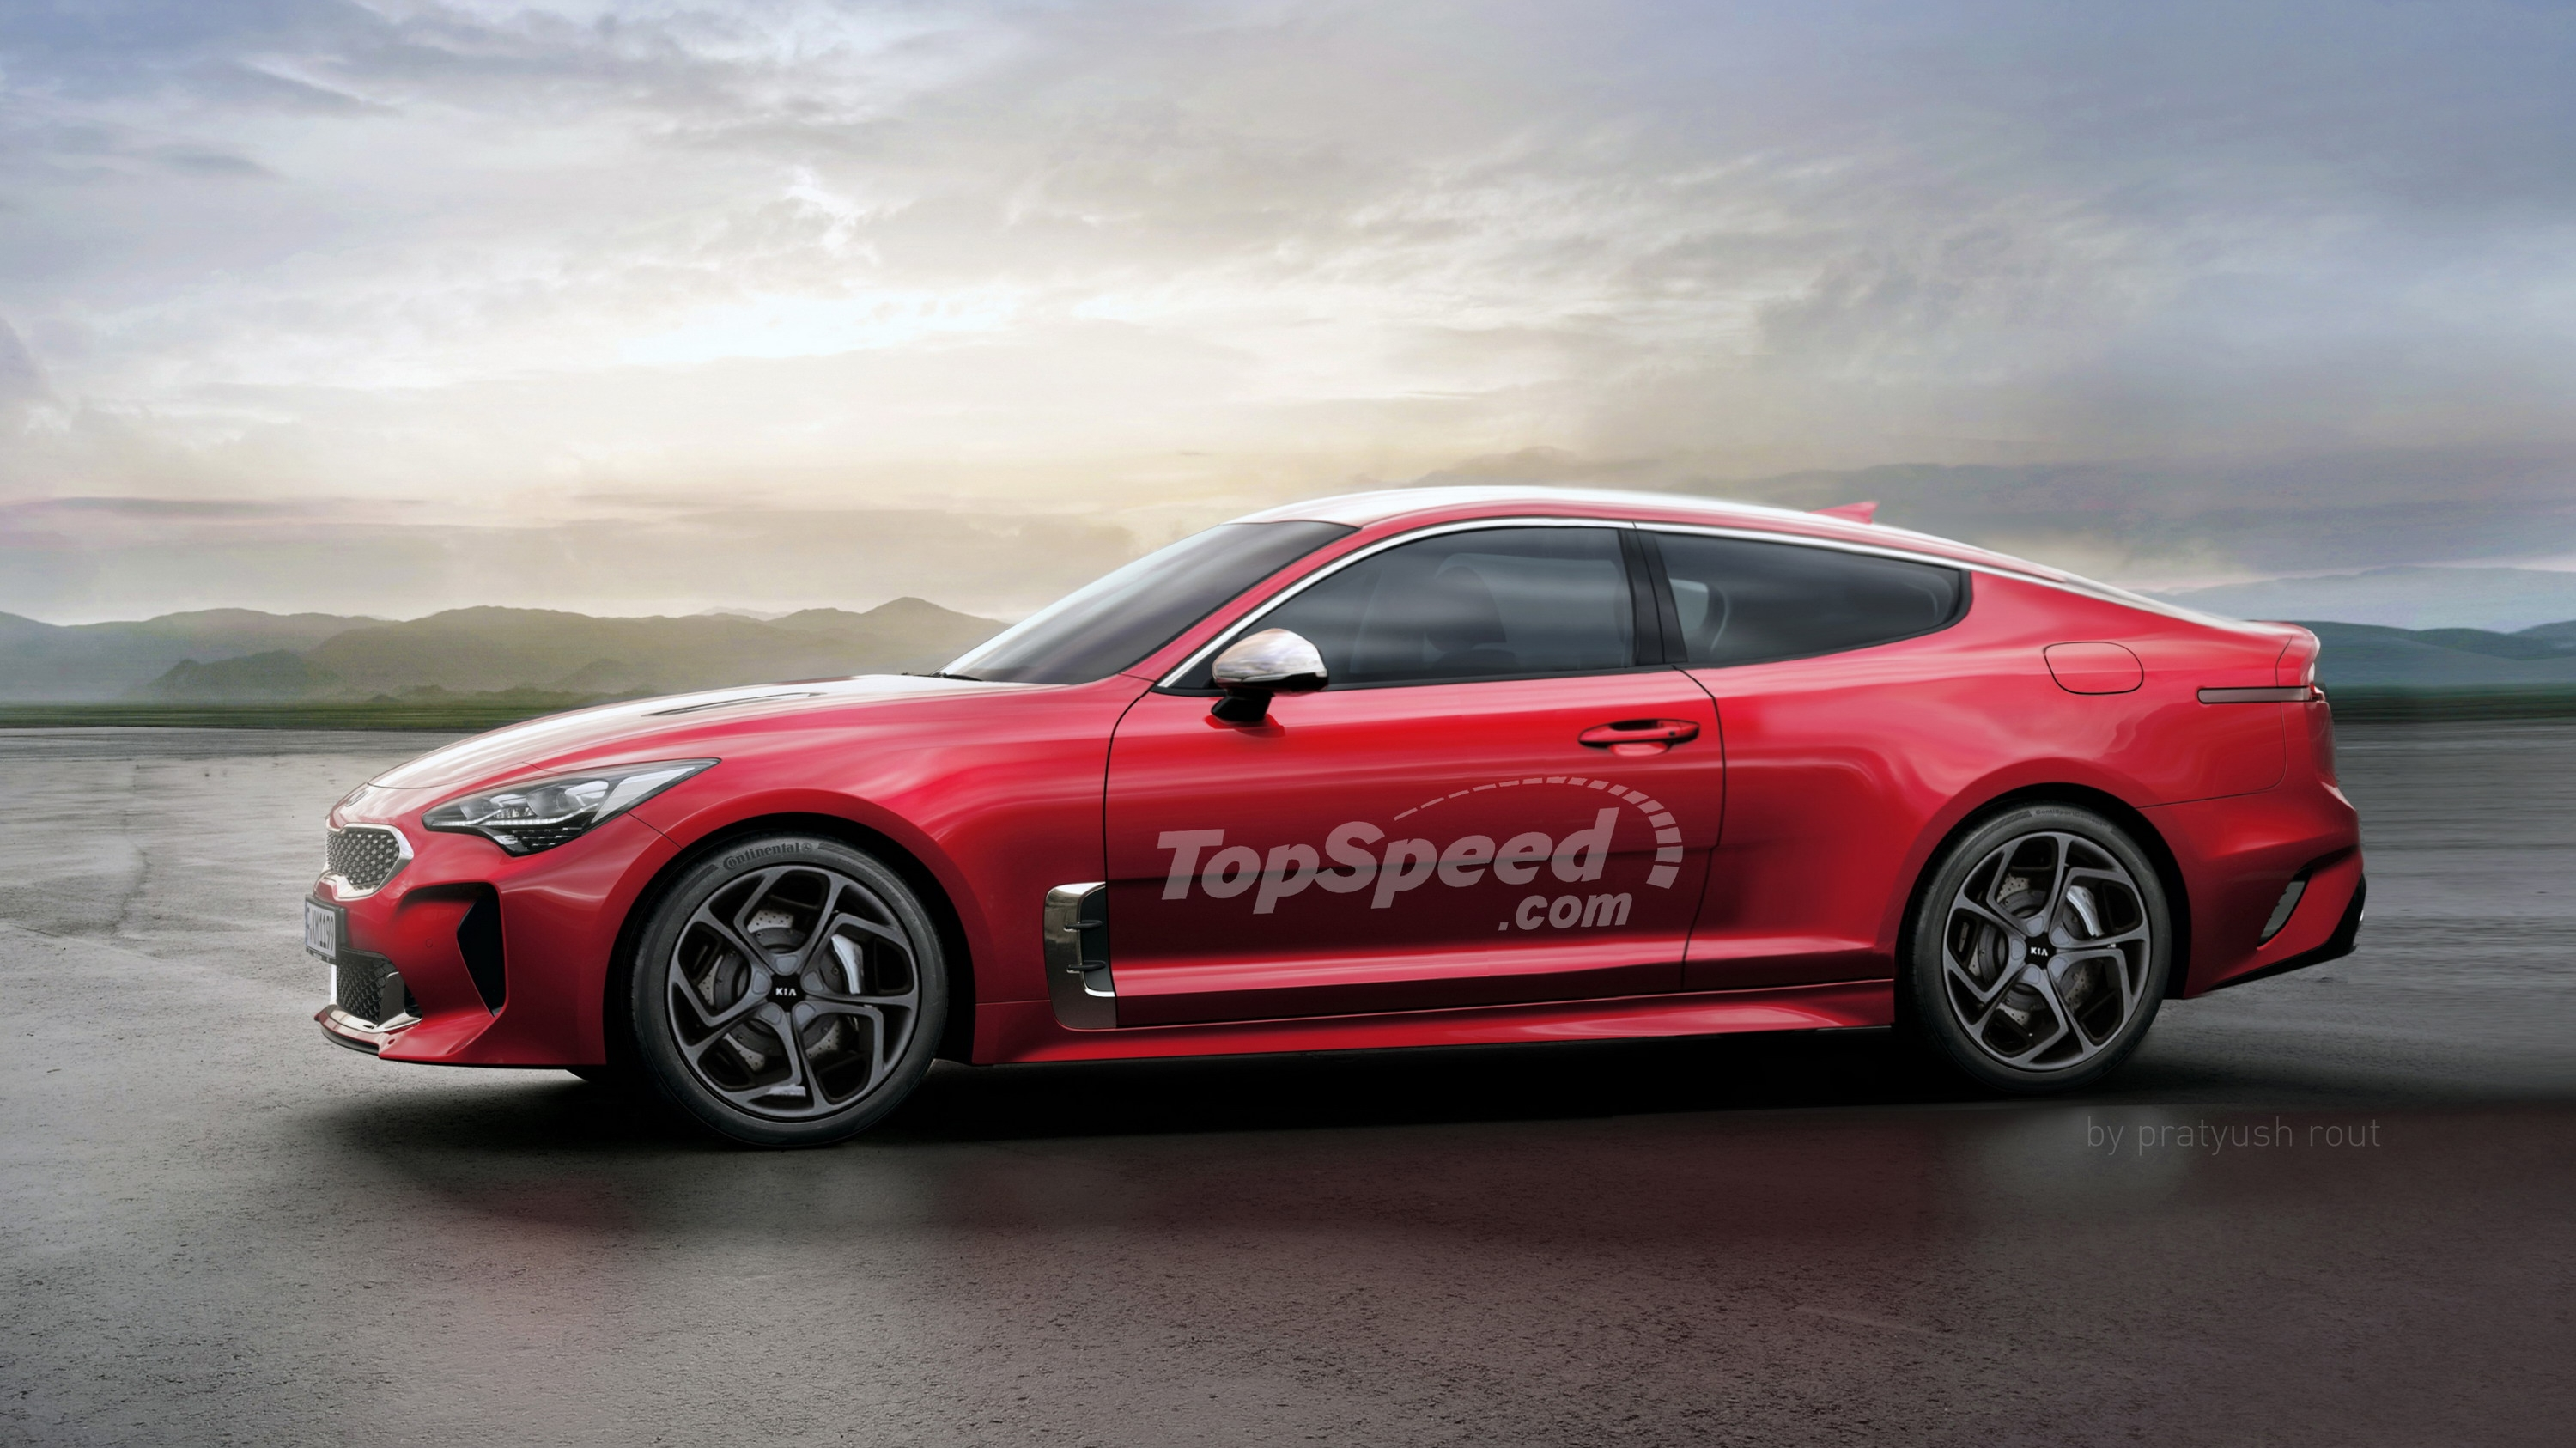 competition new has kia cars the is stinger from for saloon turbo on car tough germans saab live sports long life its dead